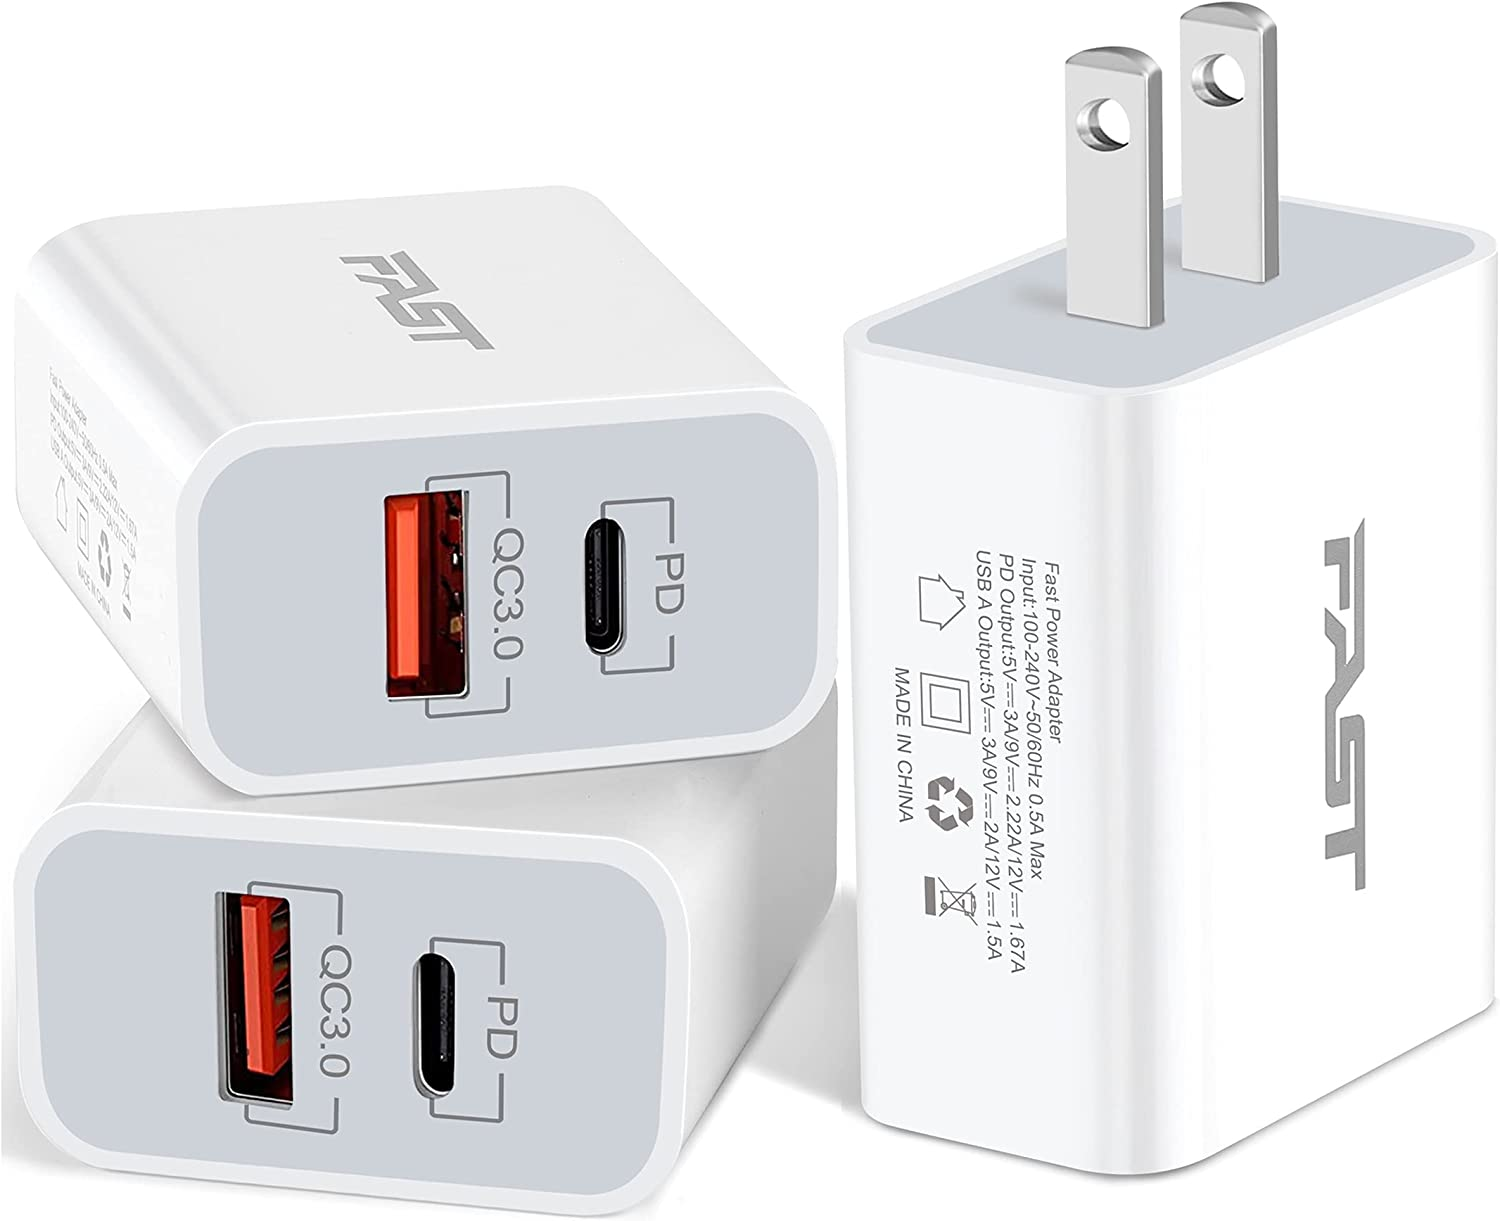 20W USB C Fast Charger, JUNVANG Dual Port PD Power Delivery + Quick Charge 3.0 Wall Charger Block Plug for iPhone 12/11 /Pro Max, XS/XR/X, 8/7/6, iPad Pro, AirPods Pro, Samsung Galaxy, Pixel (Pack-3)